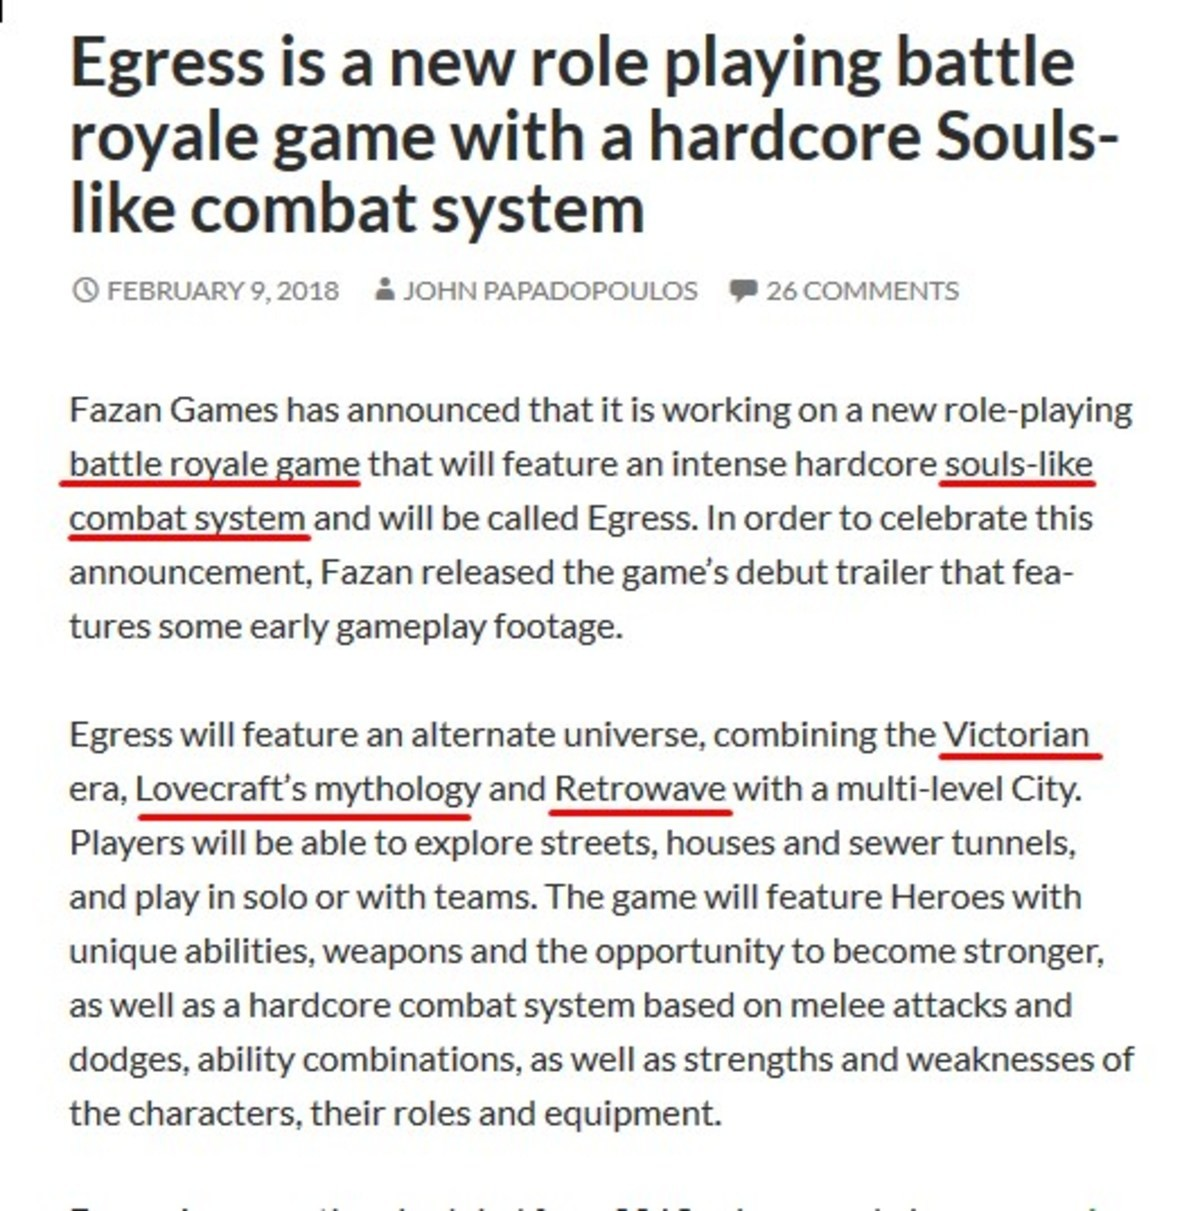 The dark souls of the current trends (?). . Egress is a new role playing battle royale garret with aiit hardcore Souls- like combat system i) FEBRUARY 9, 2018 t